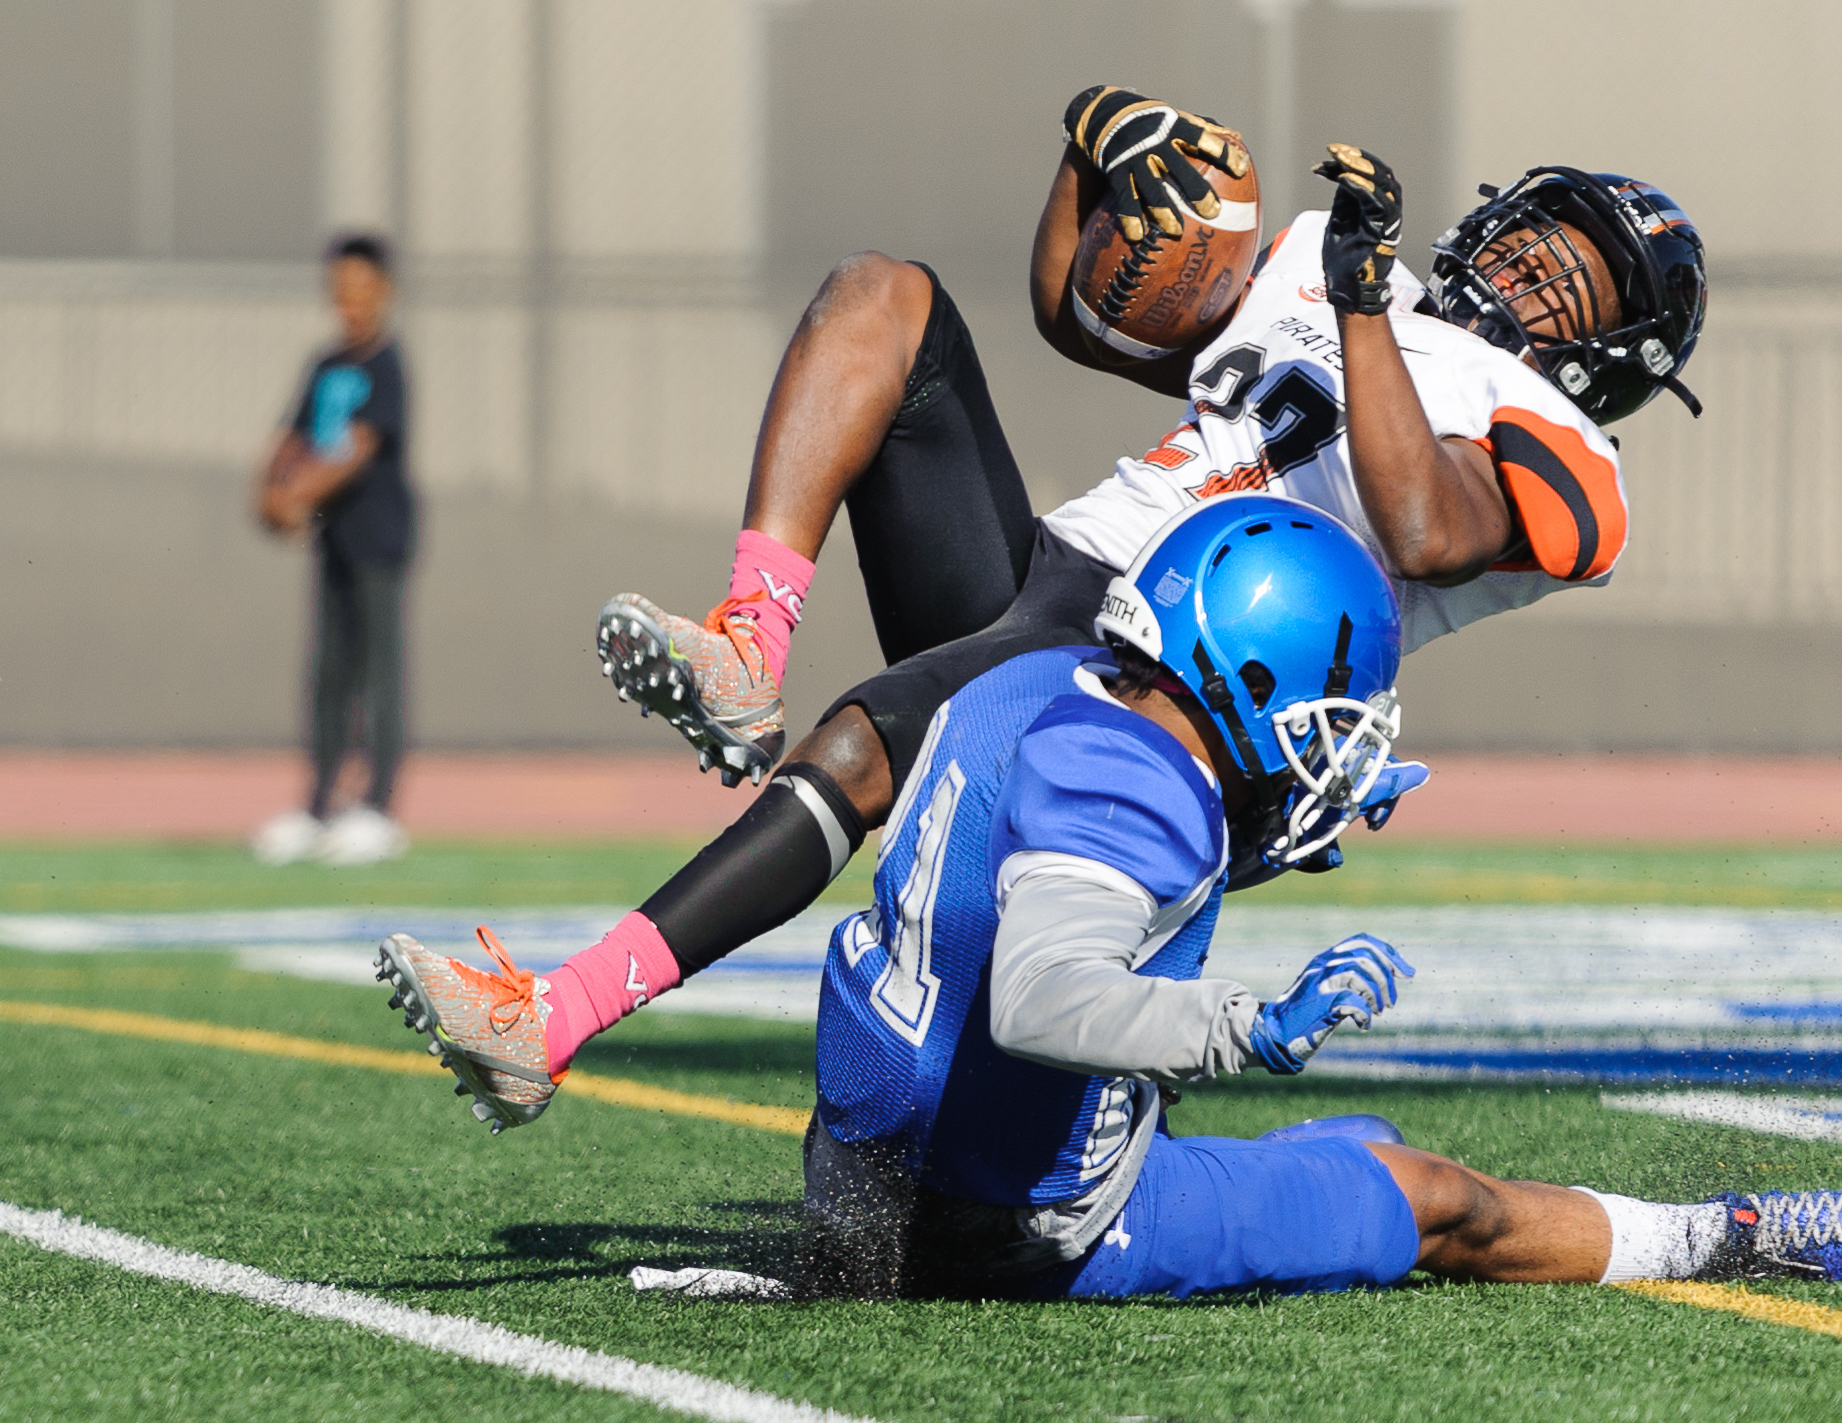 Wide receiver Aveon Irving (27) of Ventura College jumps into the endzone for a touchdown despite being tackled by Skye Germaine (21) of Santa Monica College. The touchdown was later waived off as there was a flag during the play. The Santa Monica College Corsairs lose to the Ventura College Pirates 0-55. The game was held at the Corsair Stadium at the Santa Monica College Main Campus in Santa Monica, Calif.. October 21, 2017. (Photo by: Justin Han/Corsair Staff)